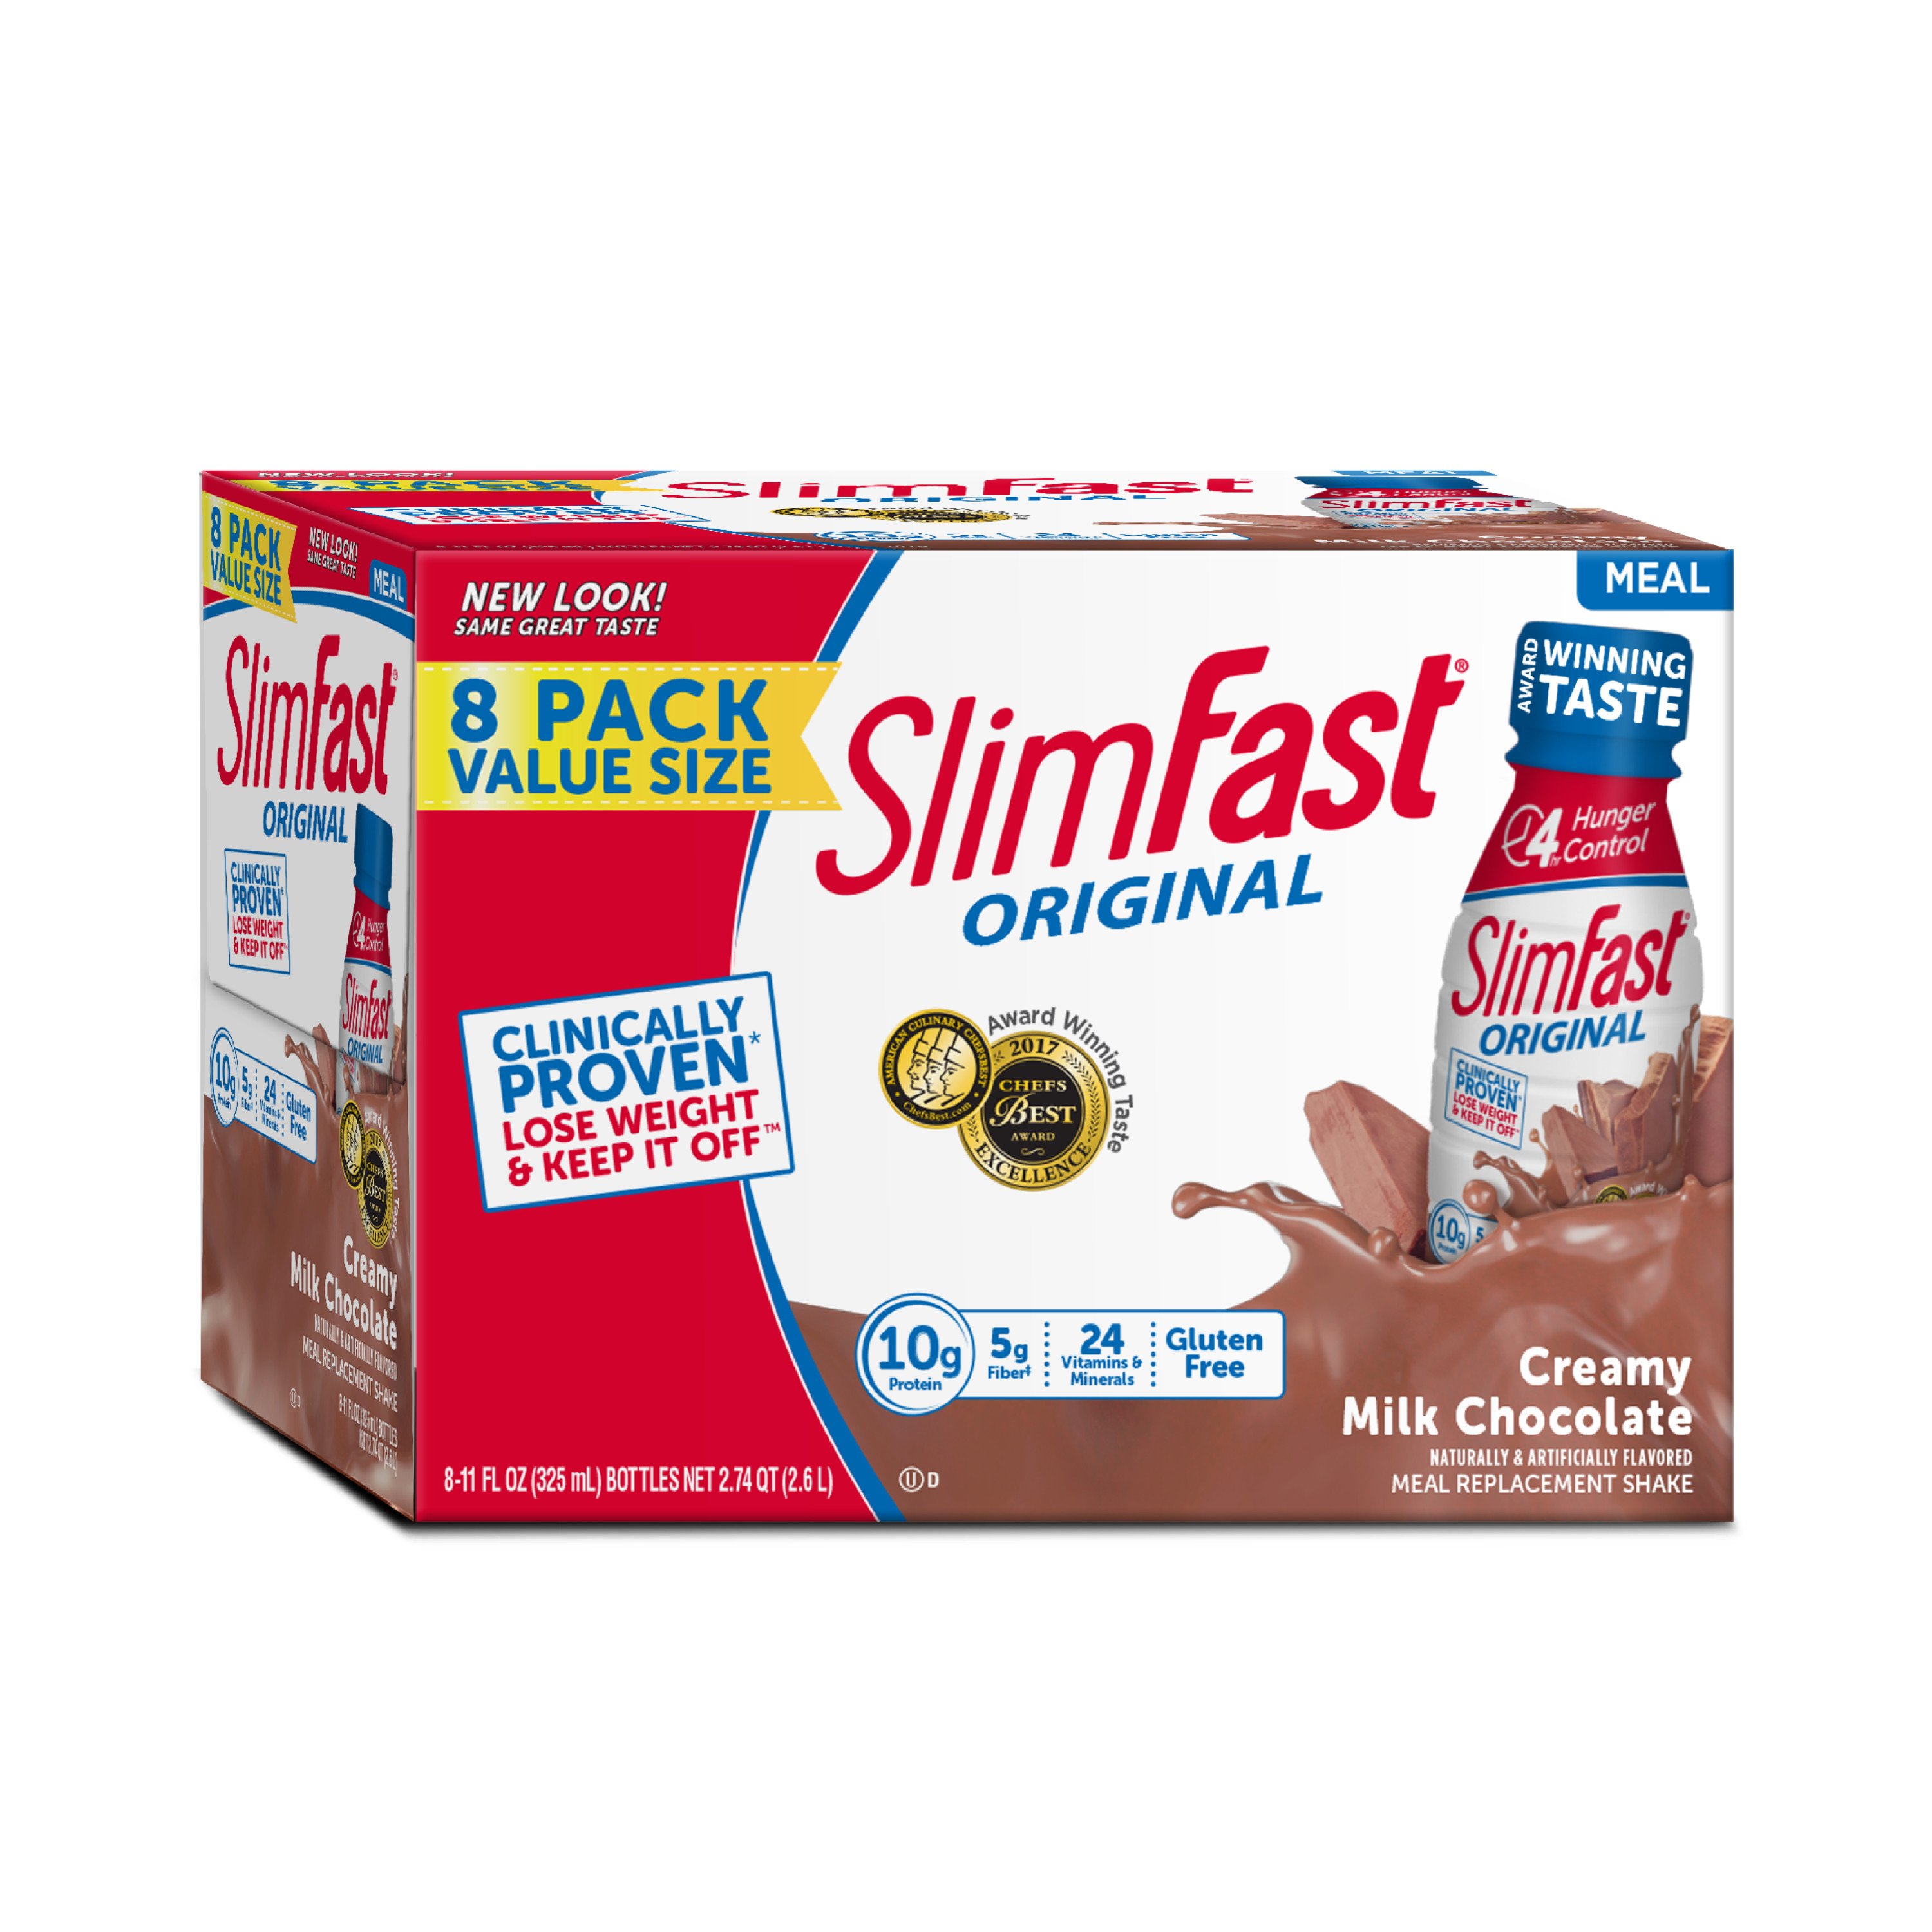 SlimFast Original Ready to Drink Meal Replacement Shakes, Creamy Milk Chocolate, 11 fl. oz., 8 pack